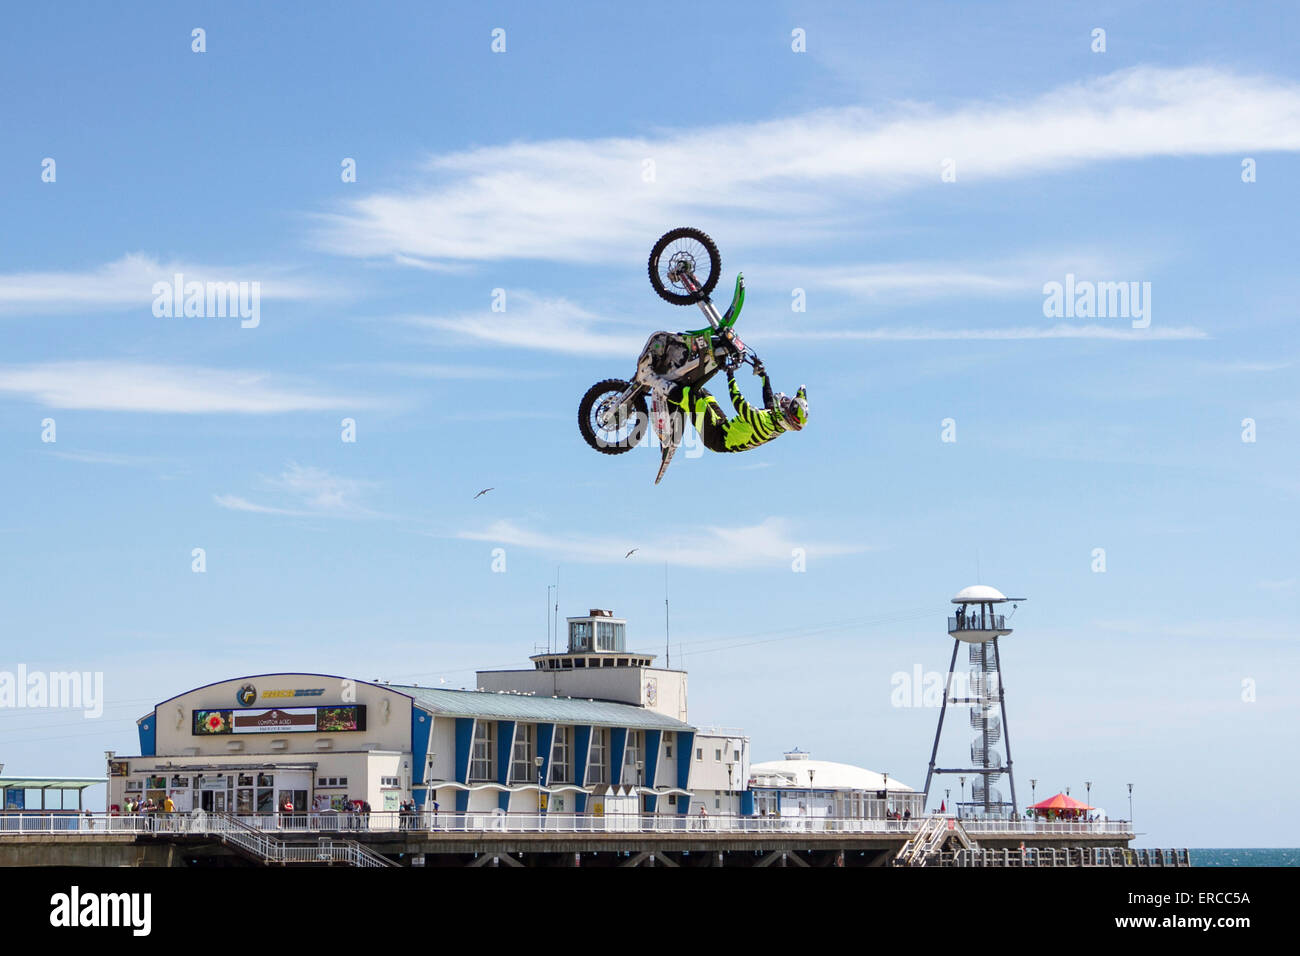 Bournemouth Wheels Festival May 2015 - Stock Image